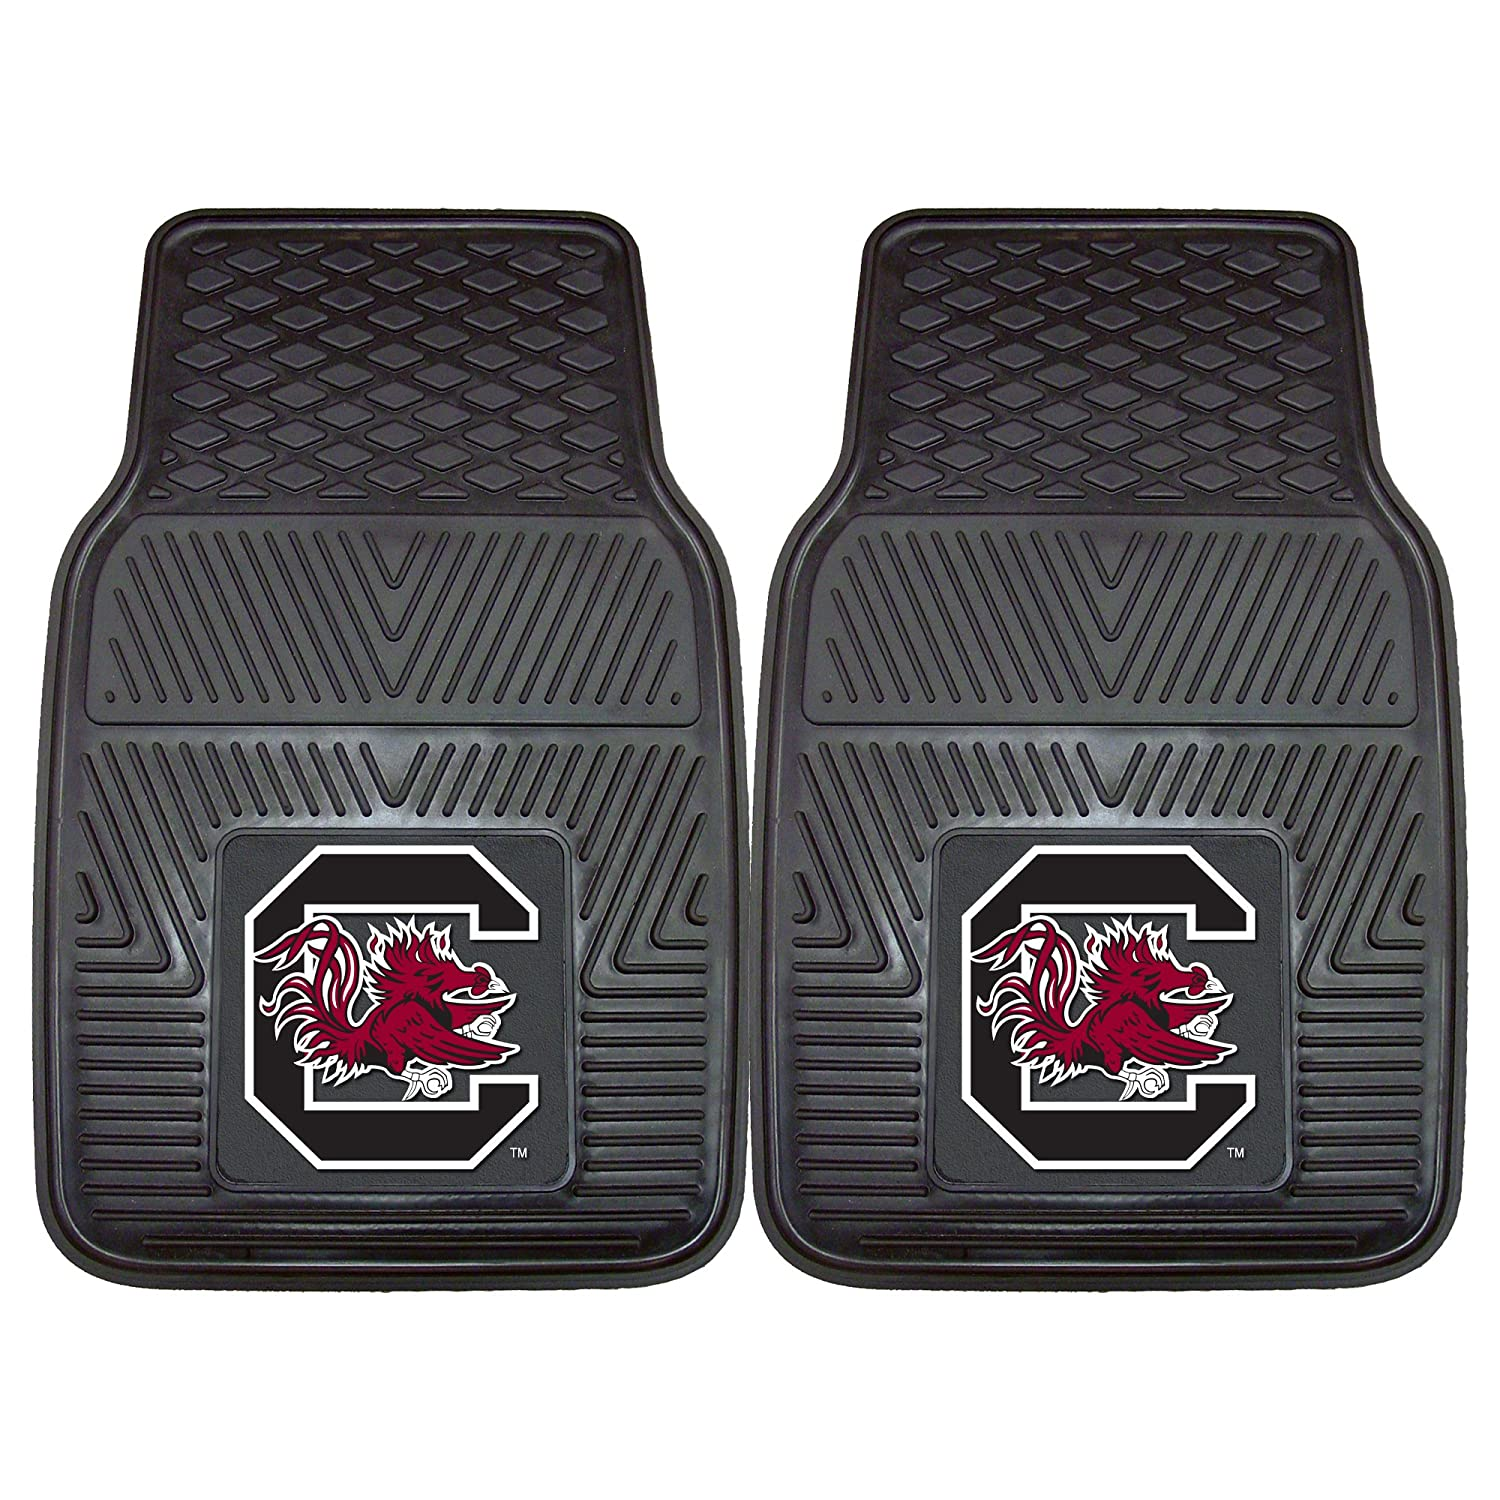 Office entry door mats - Amazon Com Fanmats Ncaa University Of South Carolina Gamecocks Vinyl Heavy Duty Car Mat Automotive